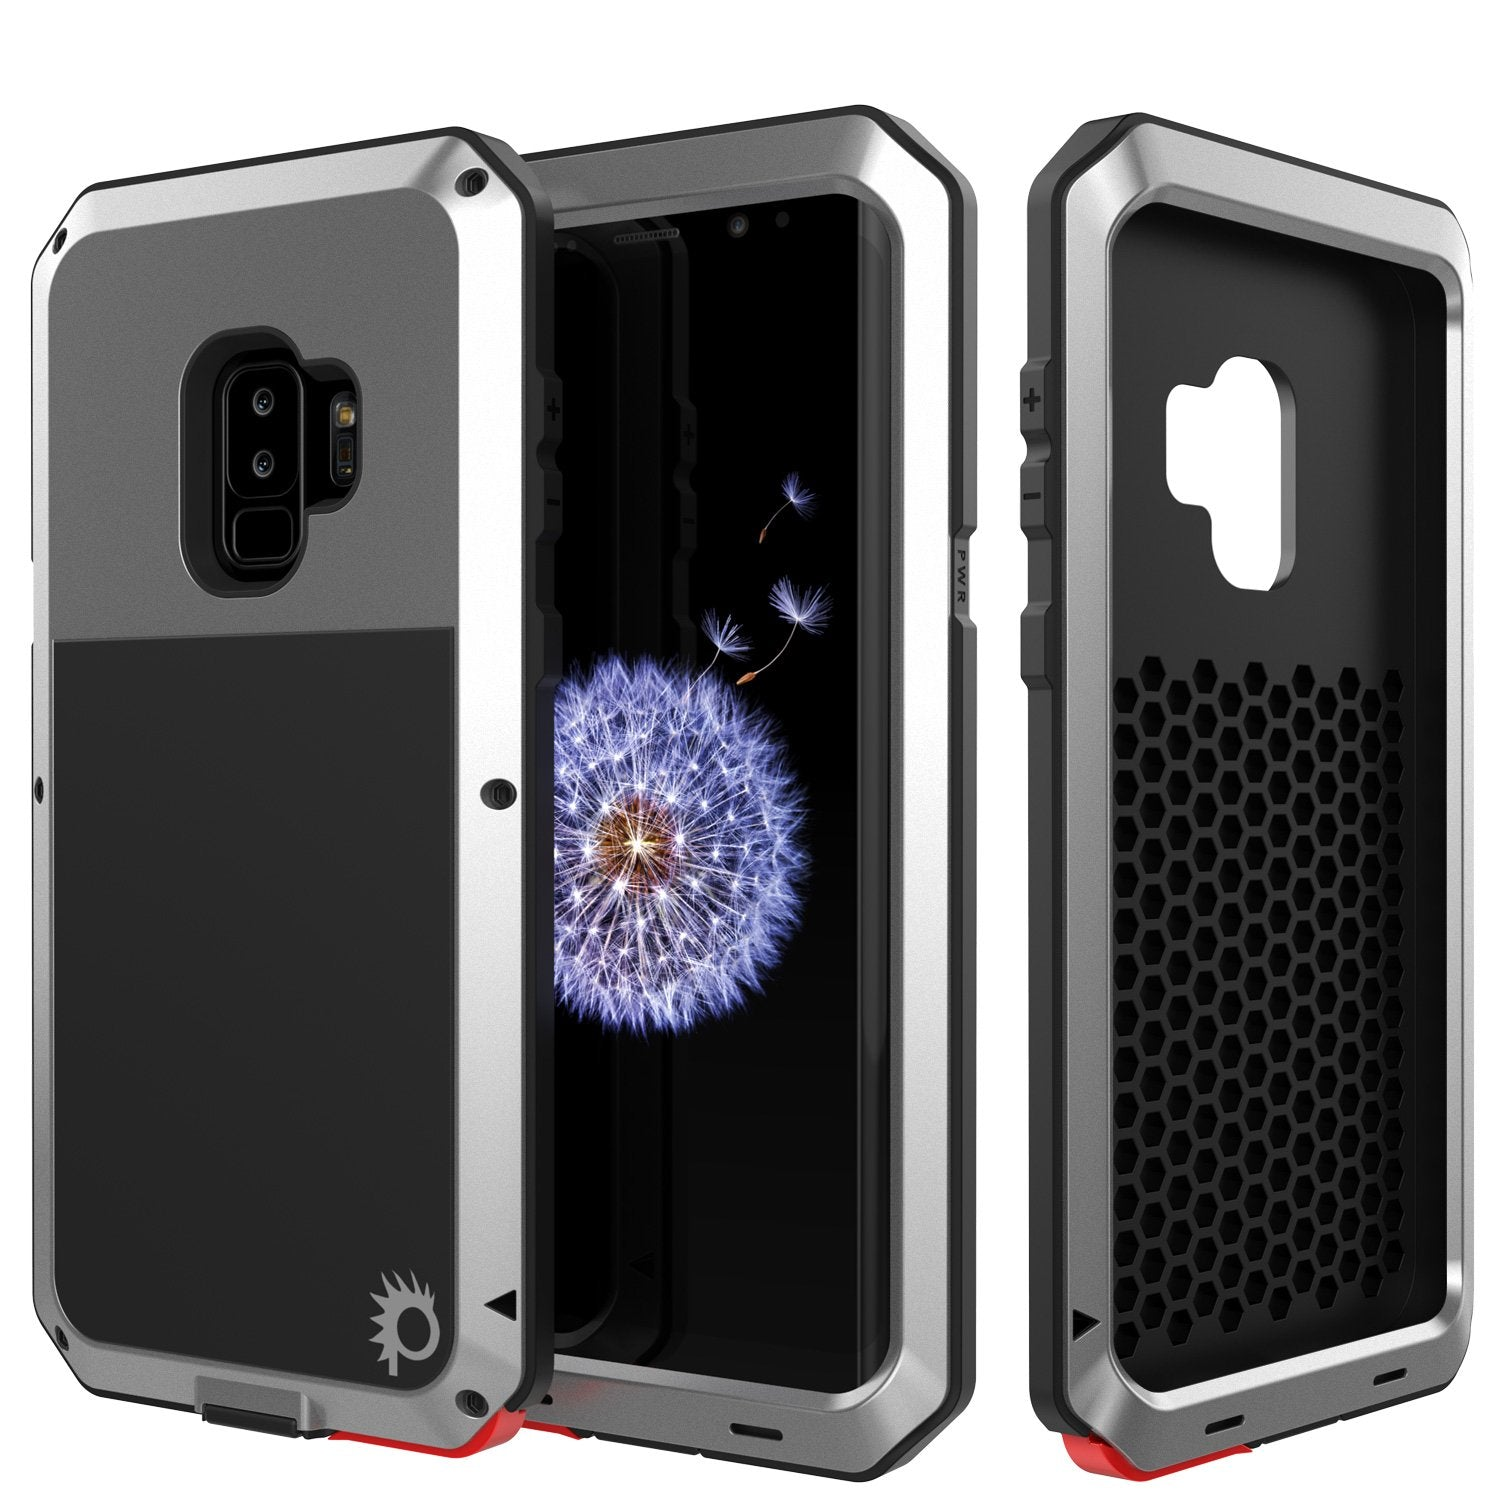 Galaxy S9 Plus Metal Case, Heavy Duty Military Grade Rugged Armor Cover [shock proof] Hybrid Full Body Hard Aluminum & TPU Design [non slip] W/ Prime Drop Protection for Samsung Galaxy S9 Plus [Silver]